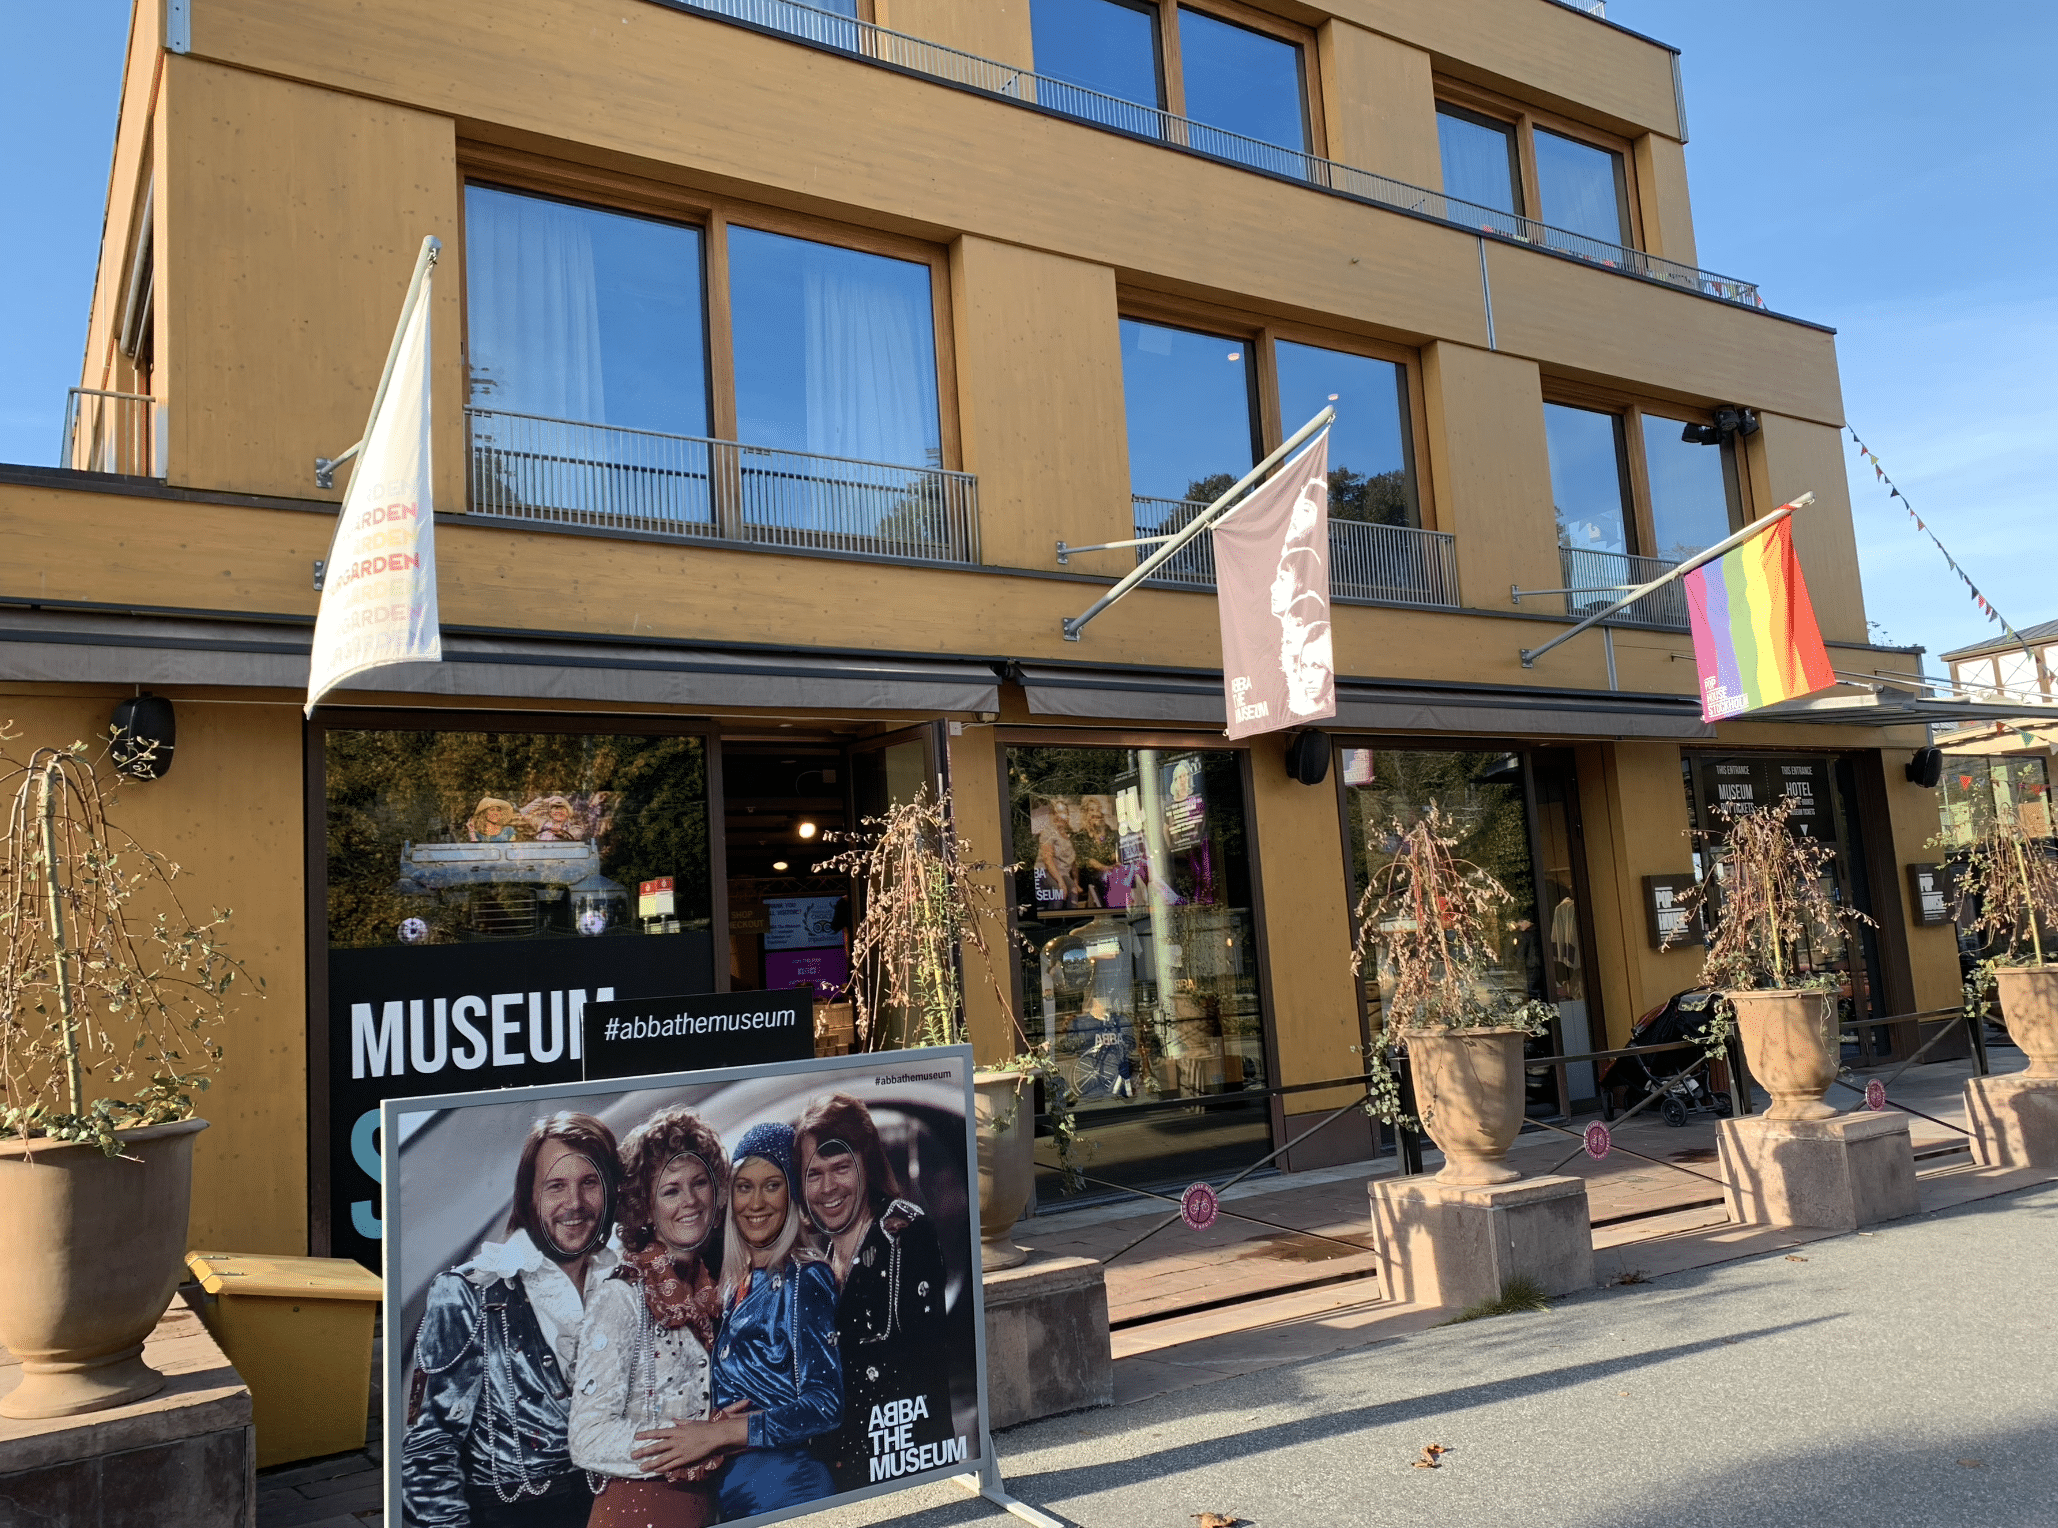 le musee d'abba